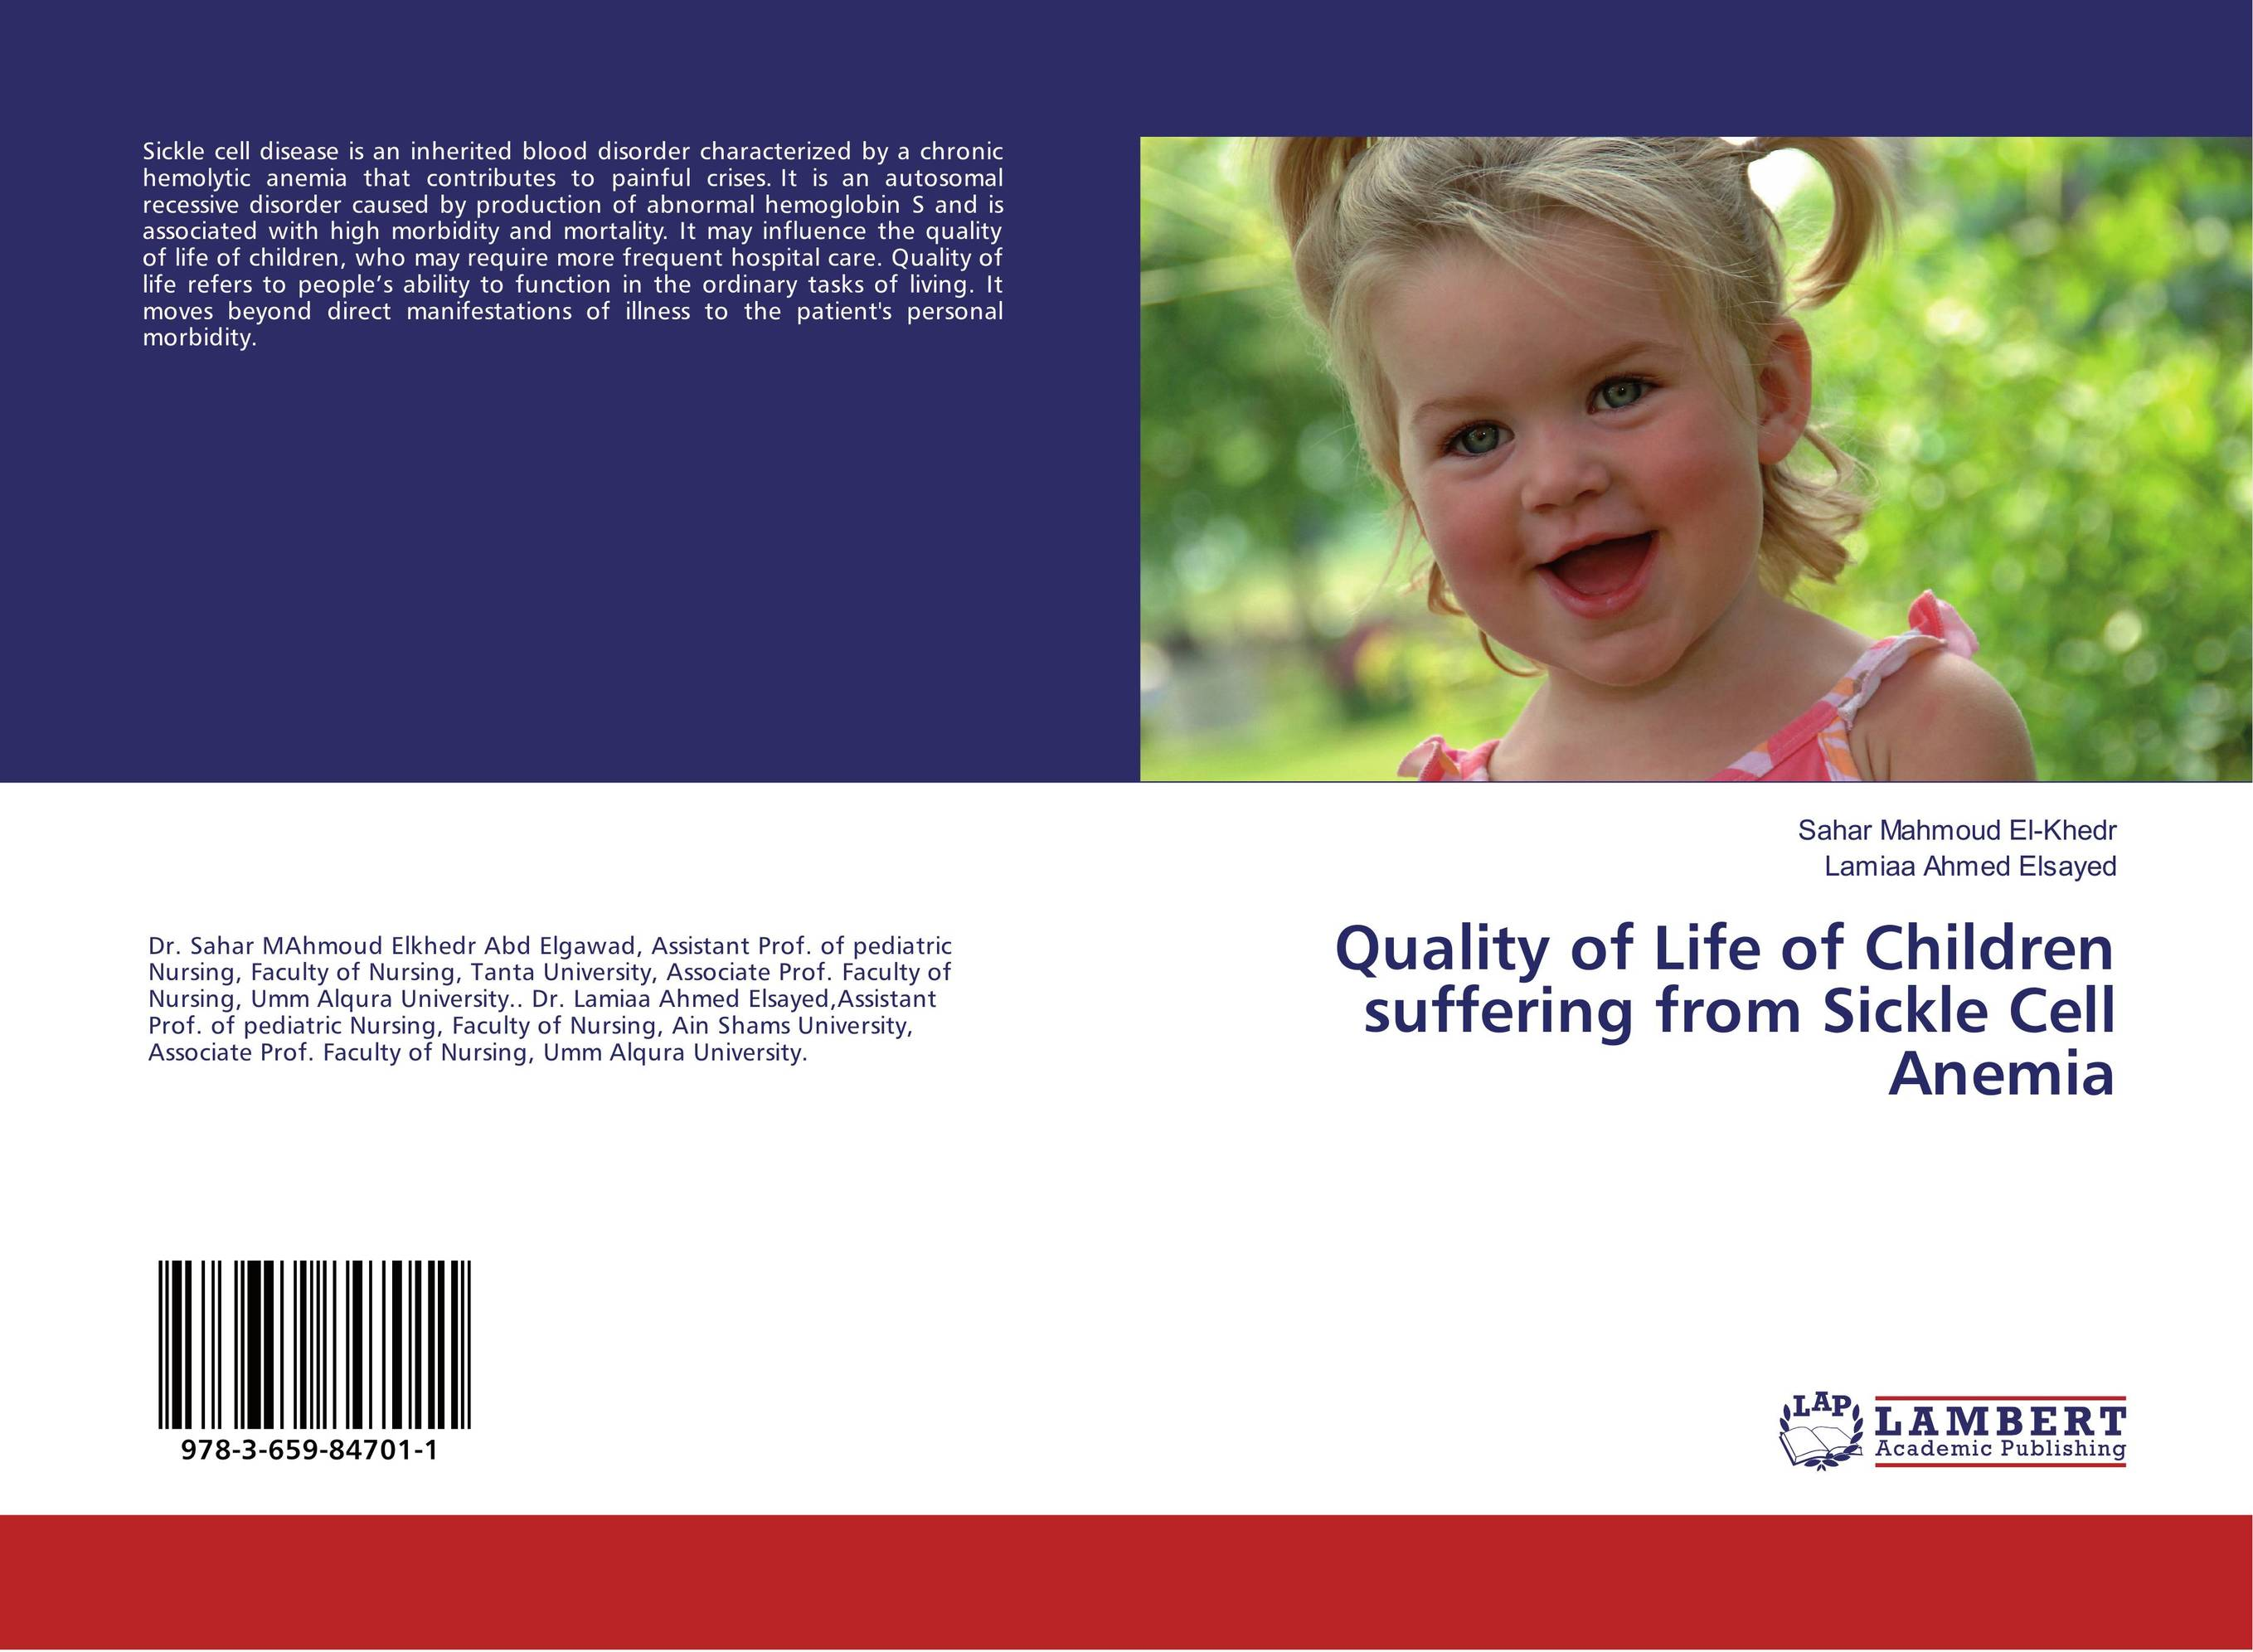 Quality of Life of Children suffering from Sickle Cell Anemia